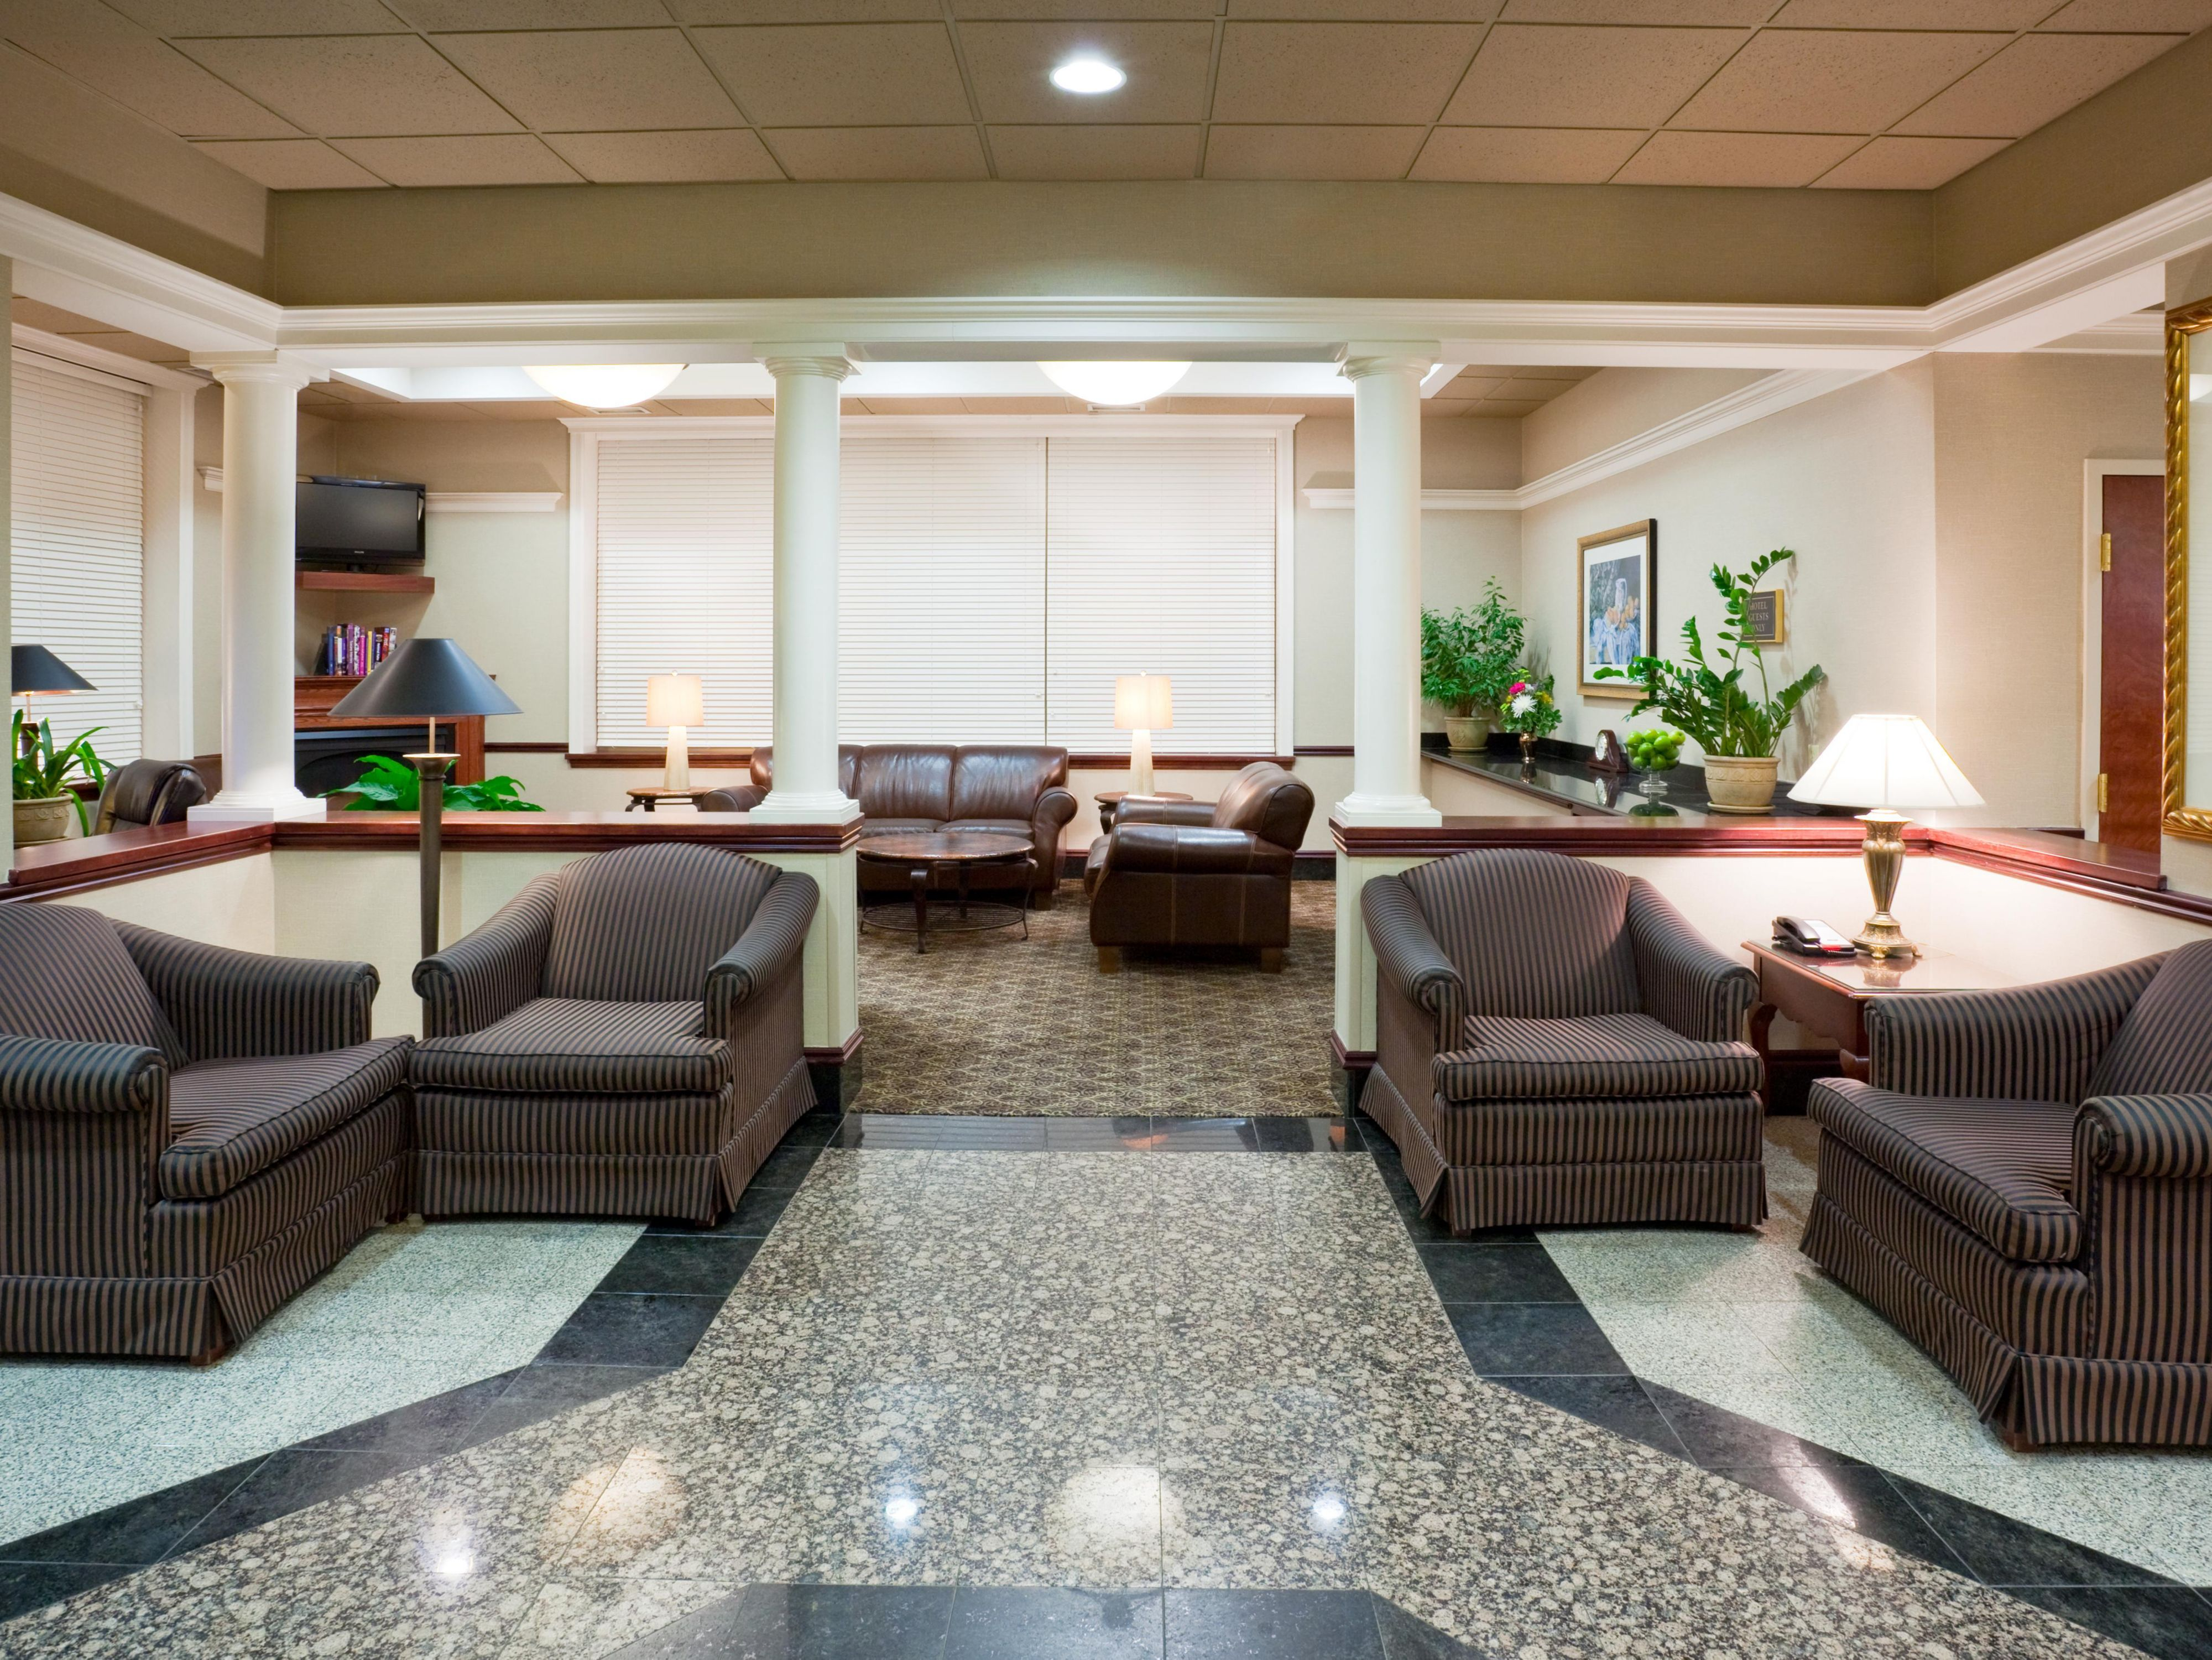 Holiday Inn Express & Suites Dwtn Mpls Conv Ctr - Hotel Lobby